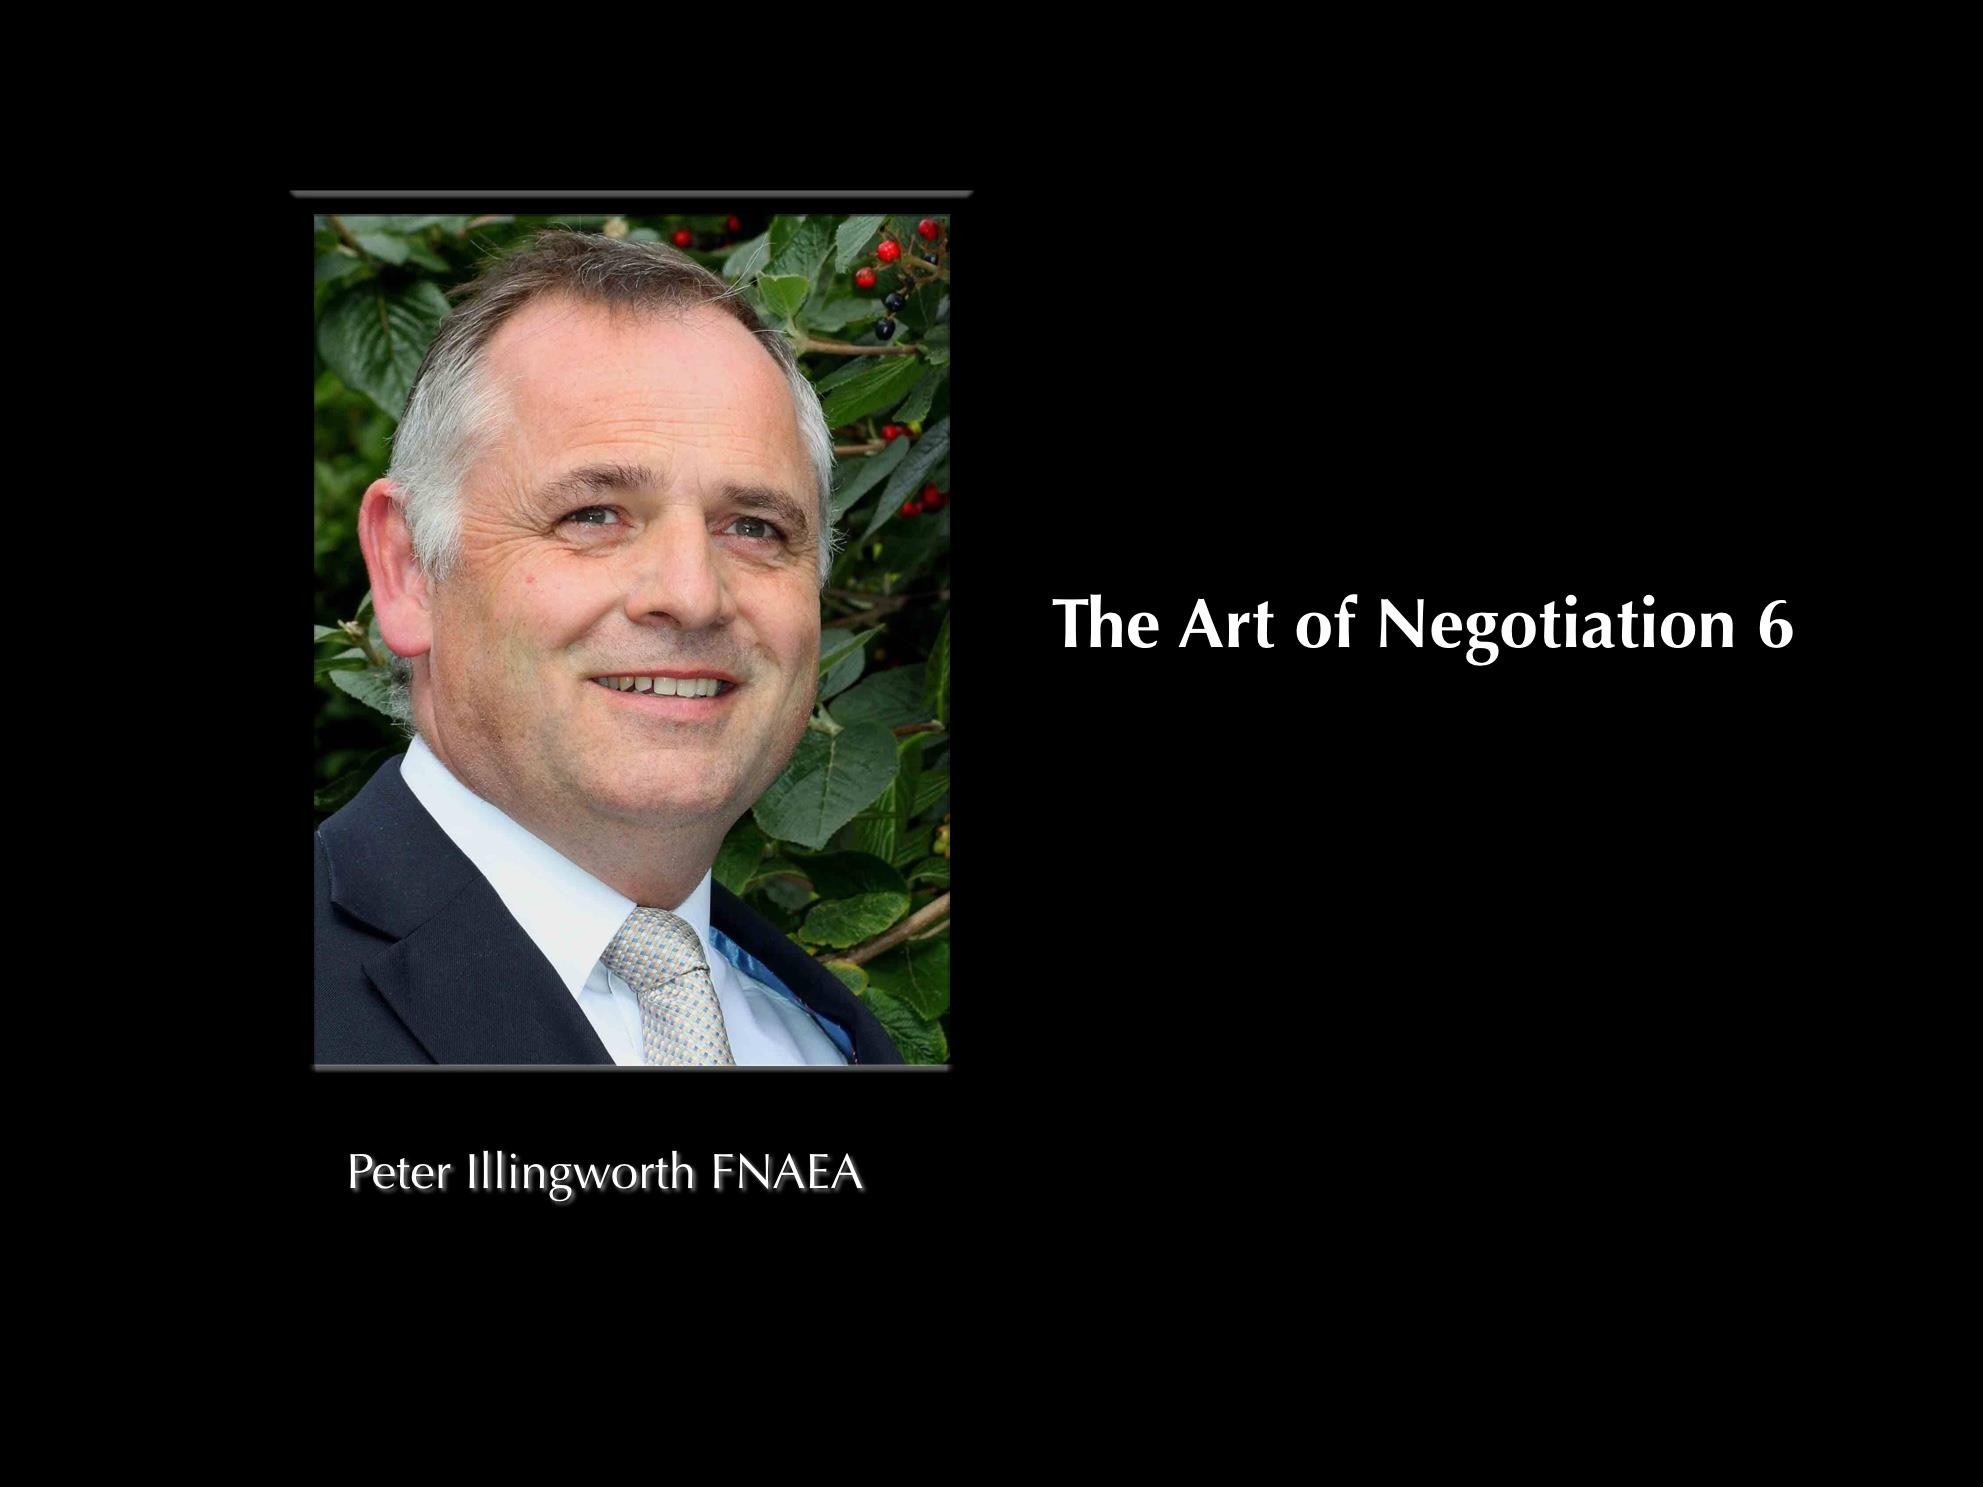 The Art of Negotiation 6